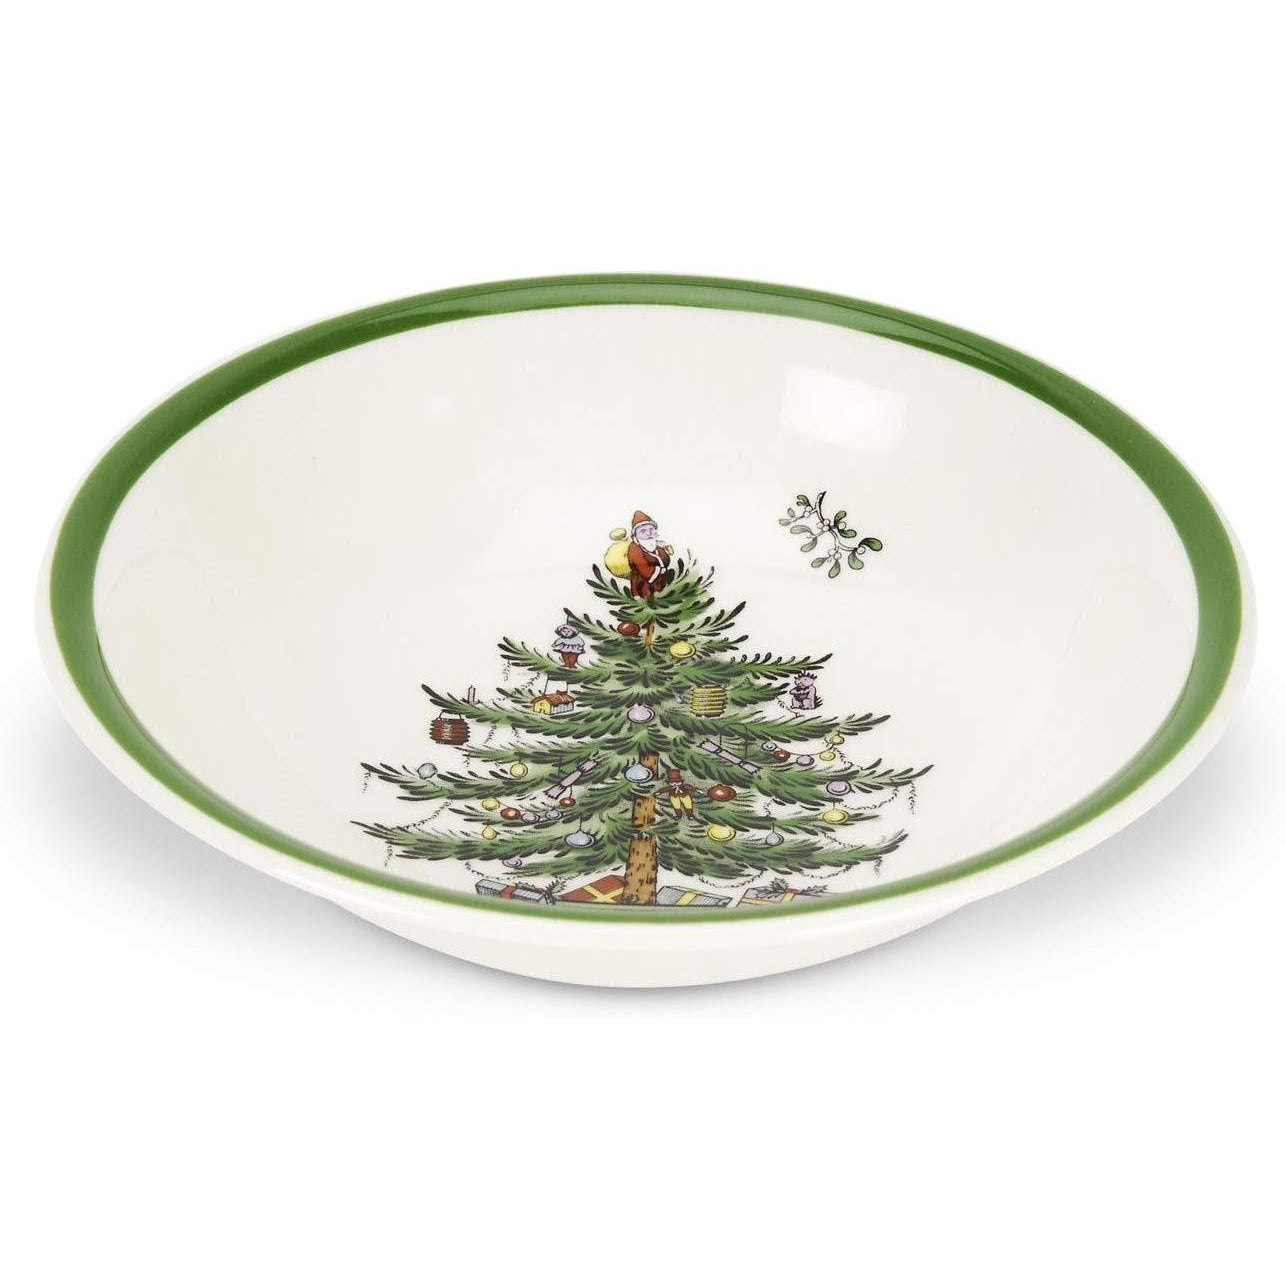 Spode Christmas Tree Cereal/Oatmeal Bowl, Set of 4